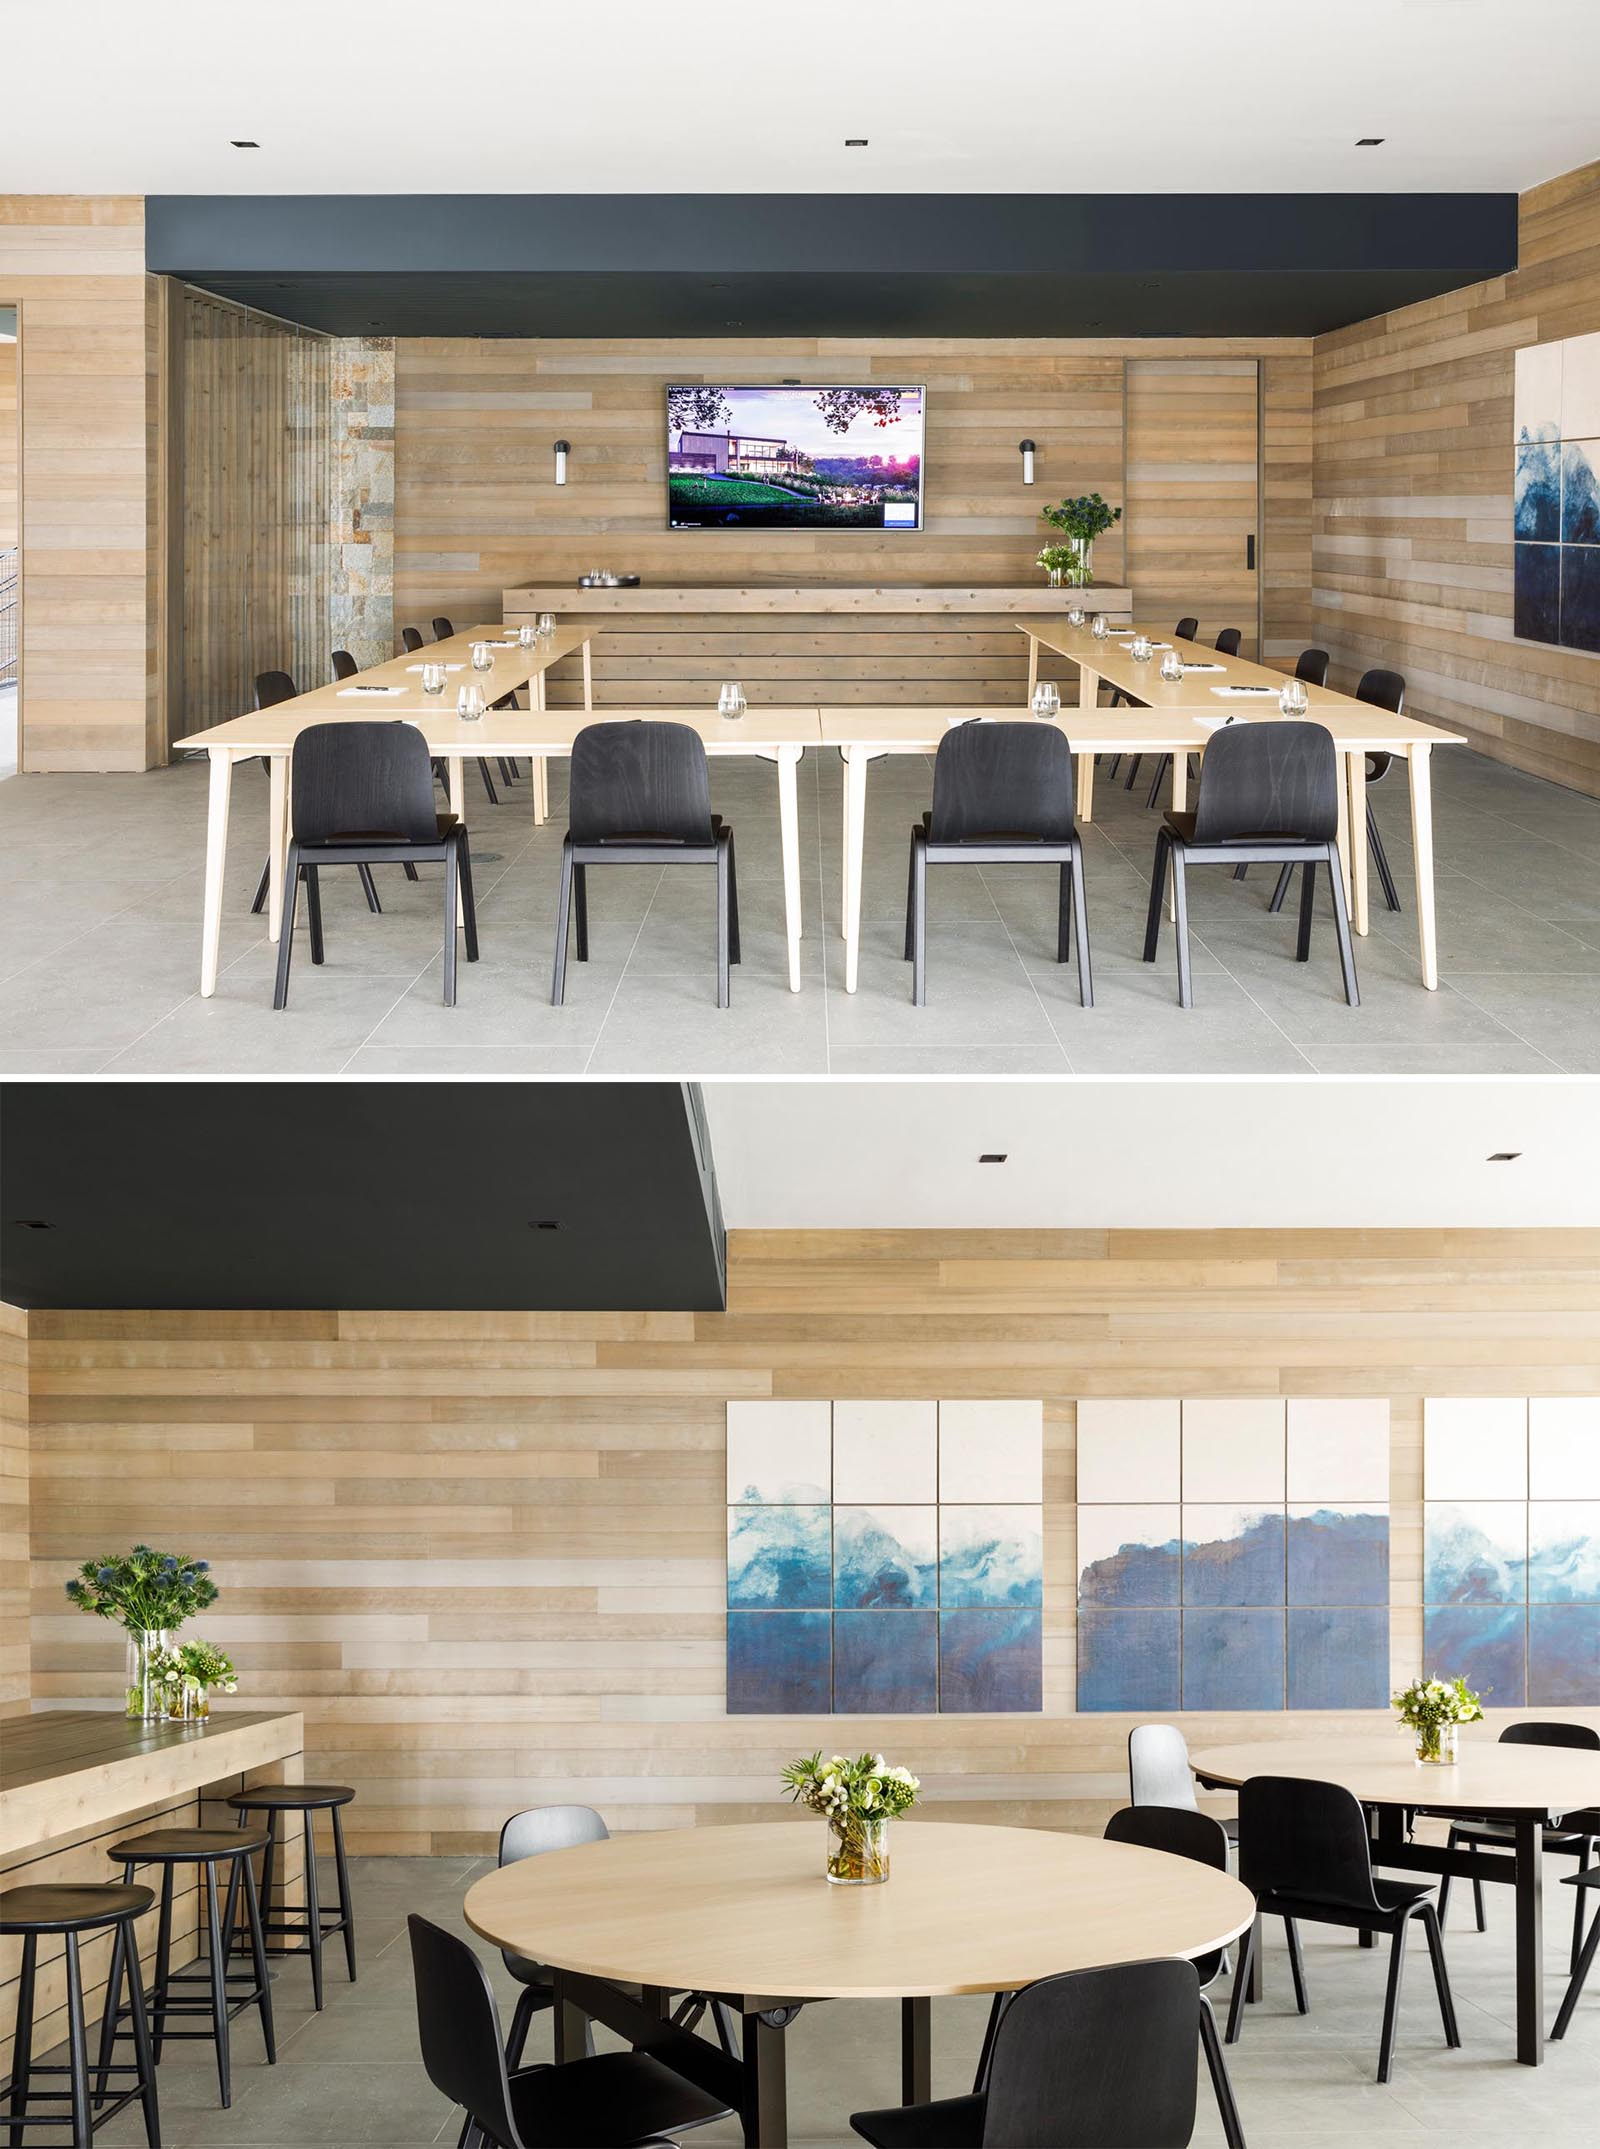 A modern conference room with tables in a U-shaped layout, as well as smaller round tables for more intimate meetings.